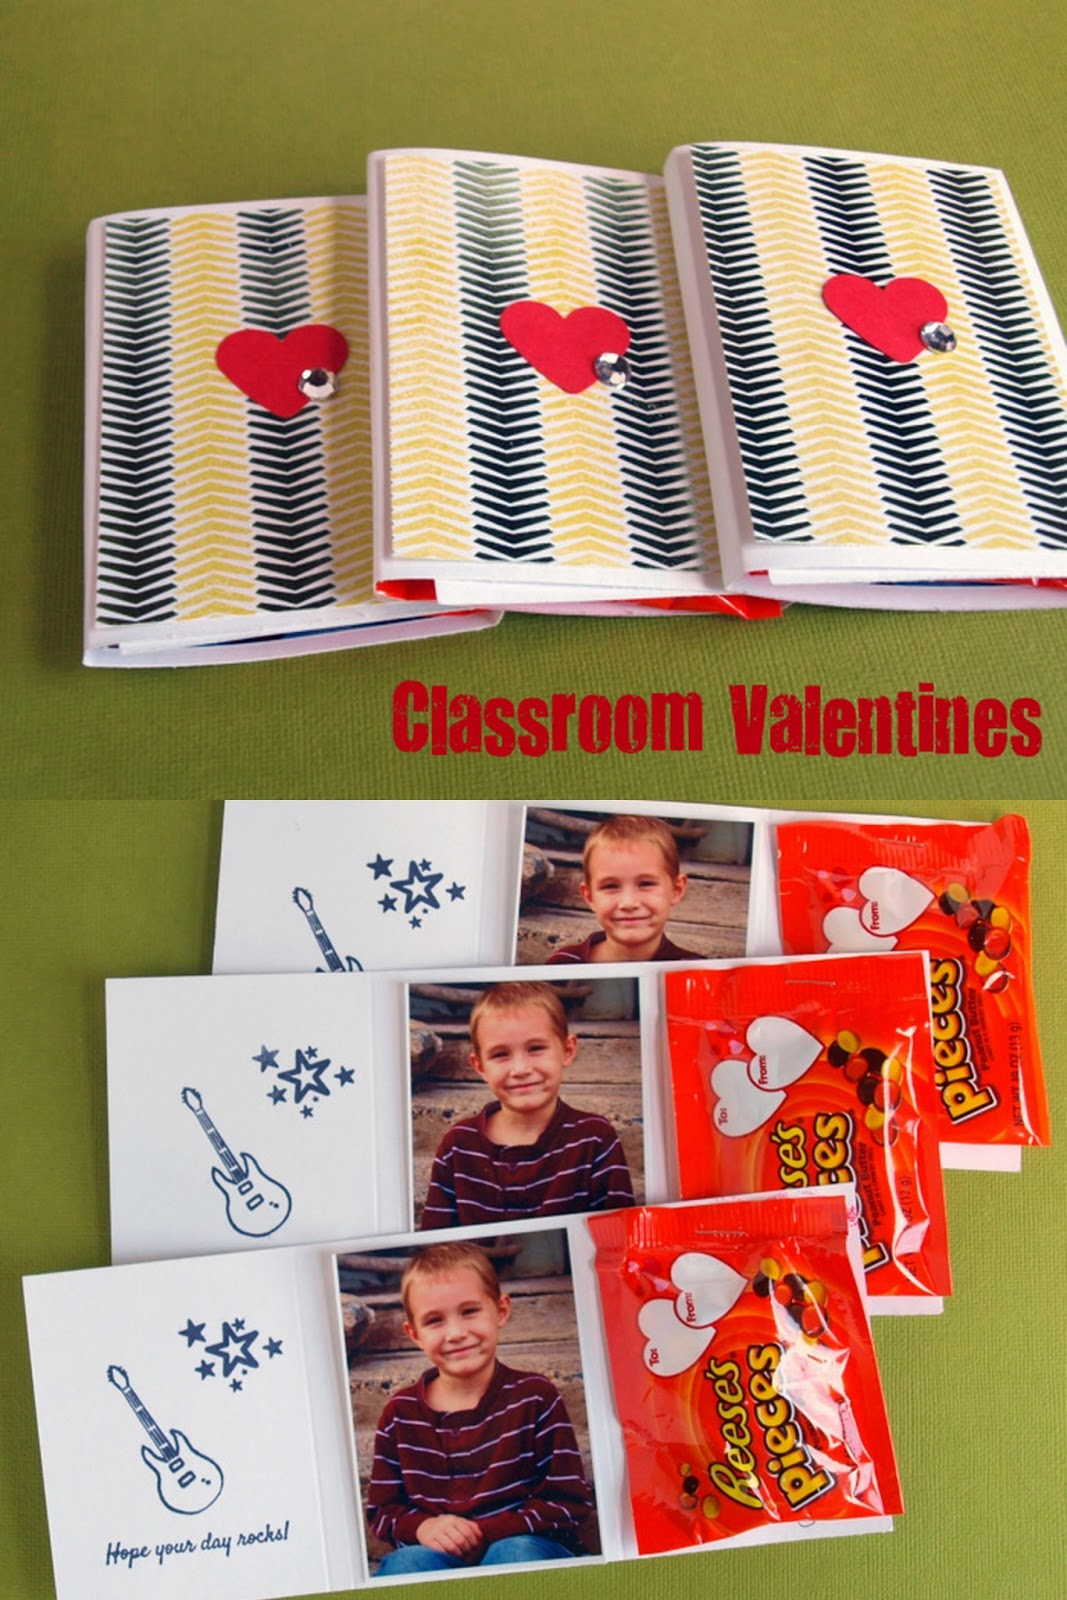 Classroom Design For Valentines Day ~ The honor roll classroom valentines tutorial